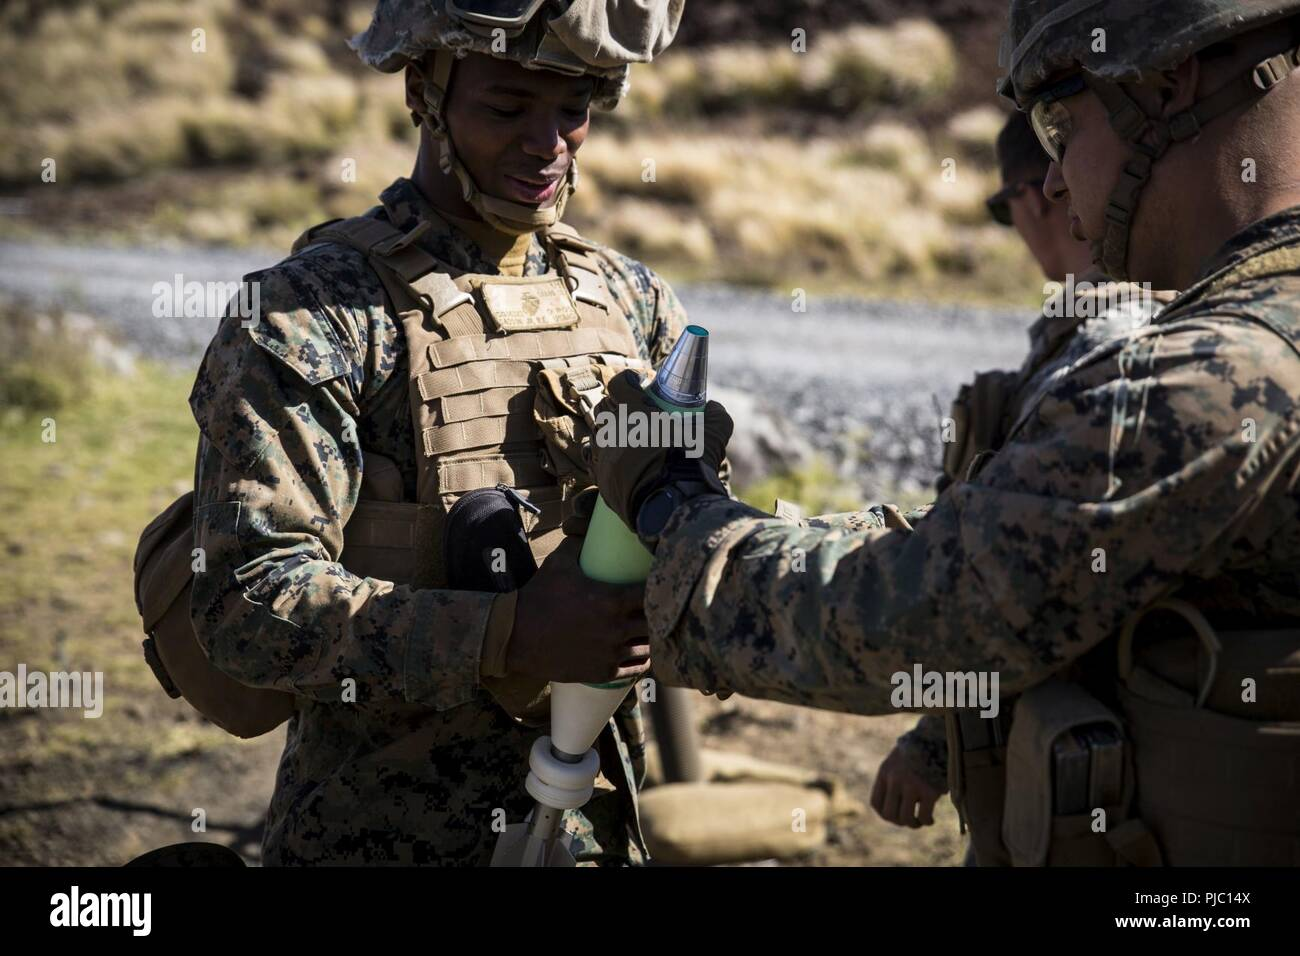 The Collateral Damage Of Testing >> Pohakuloa Training Area Hawaii July 16 2018 U S Marines With